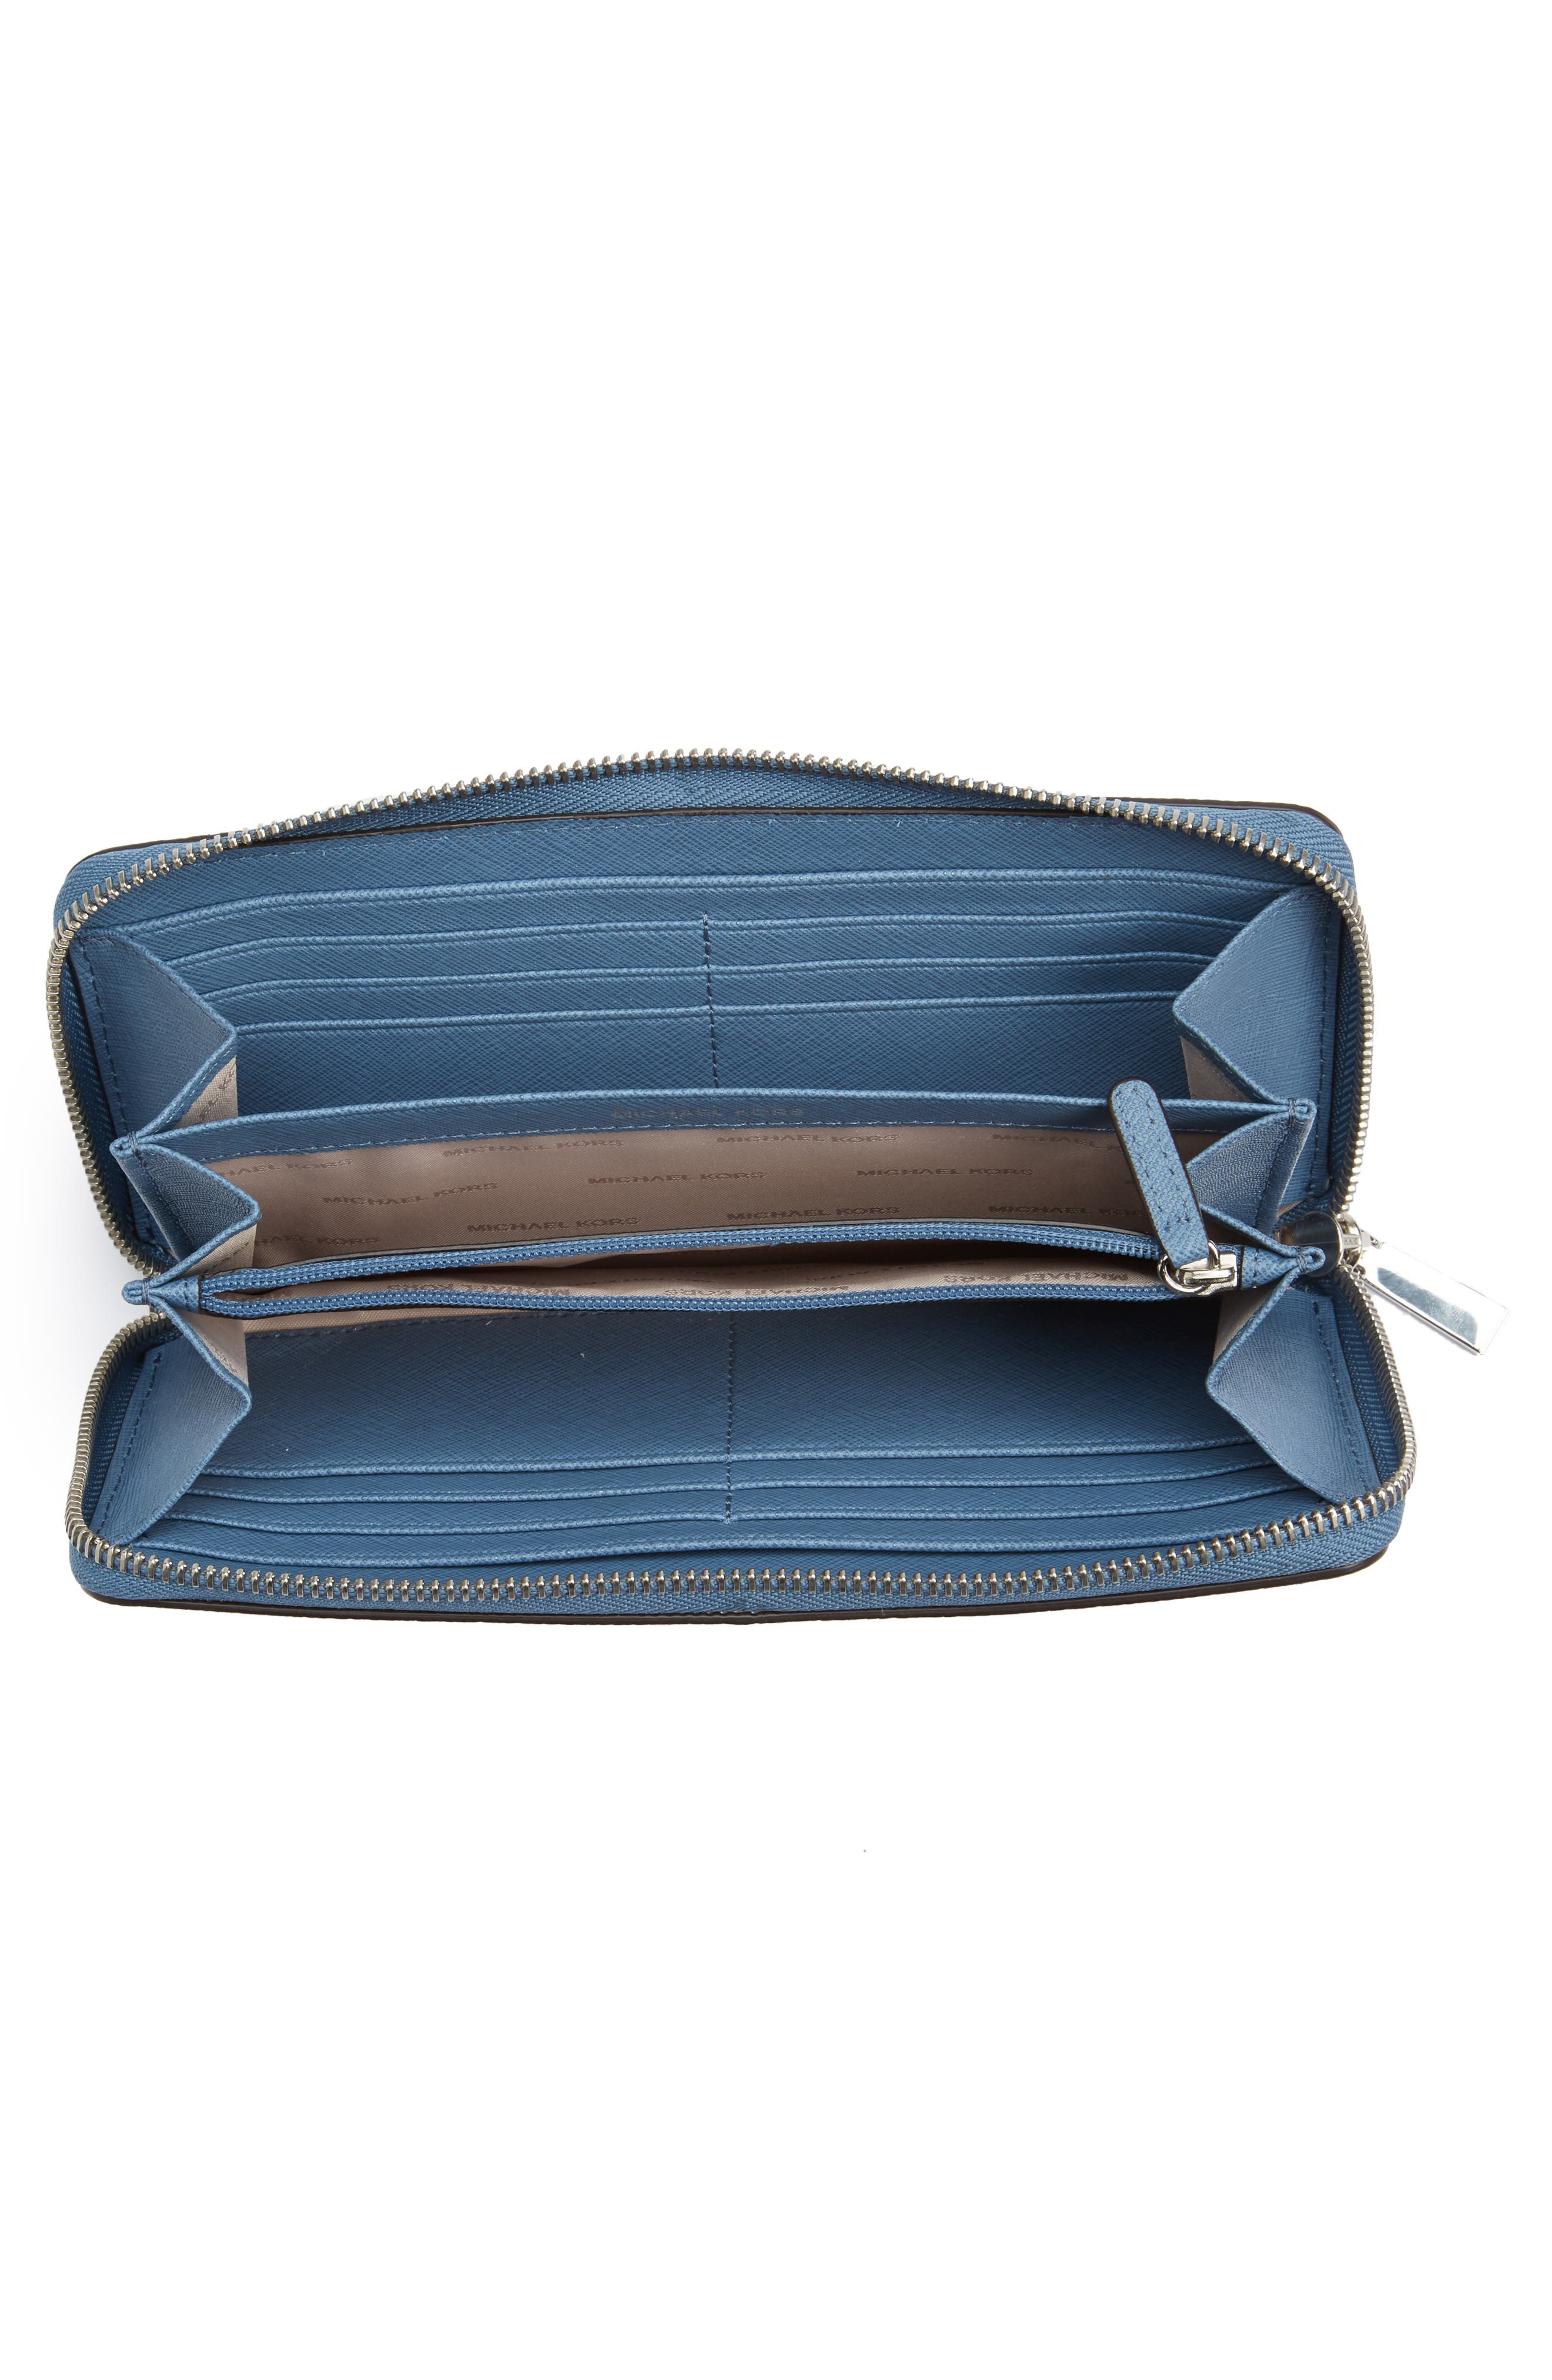 Mercer Leather Continental Wallet,                             Alternate thumbnail 5, color,